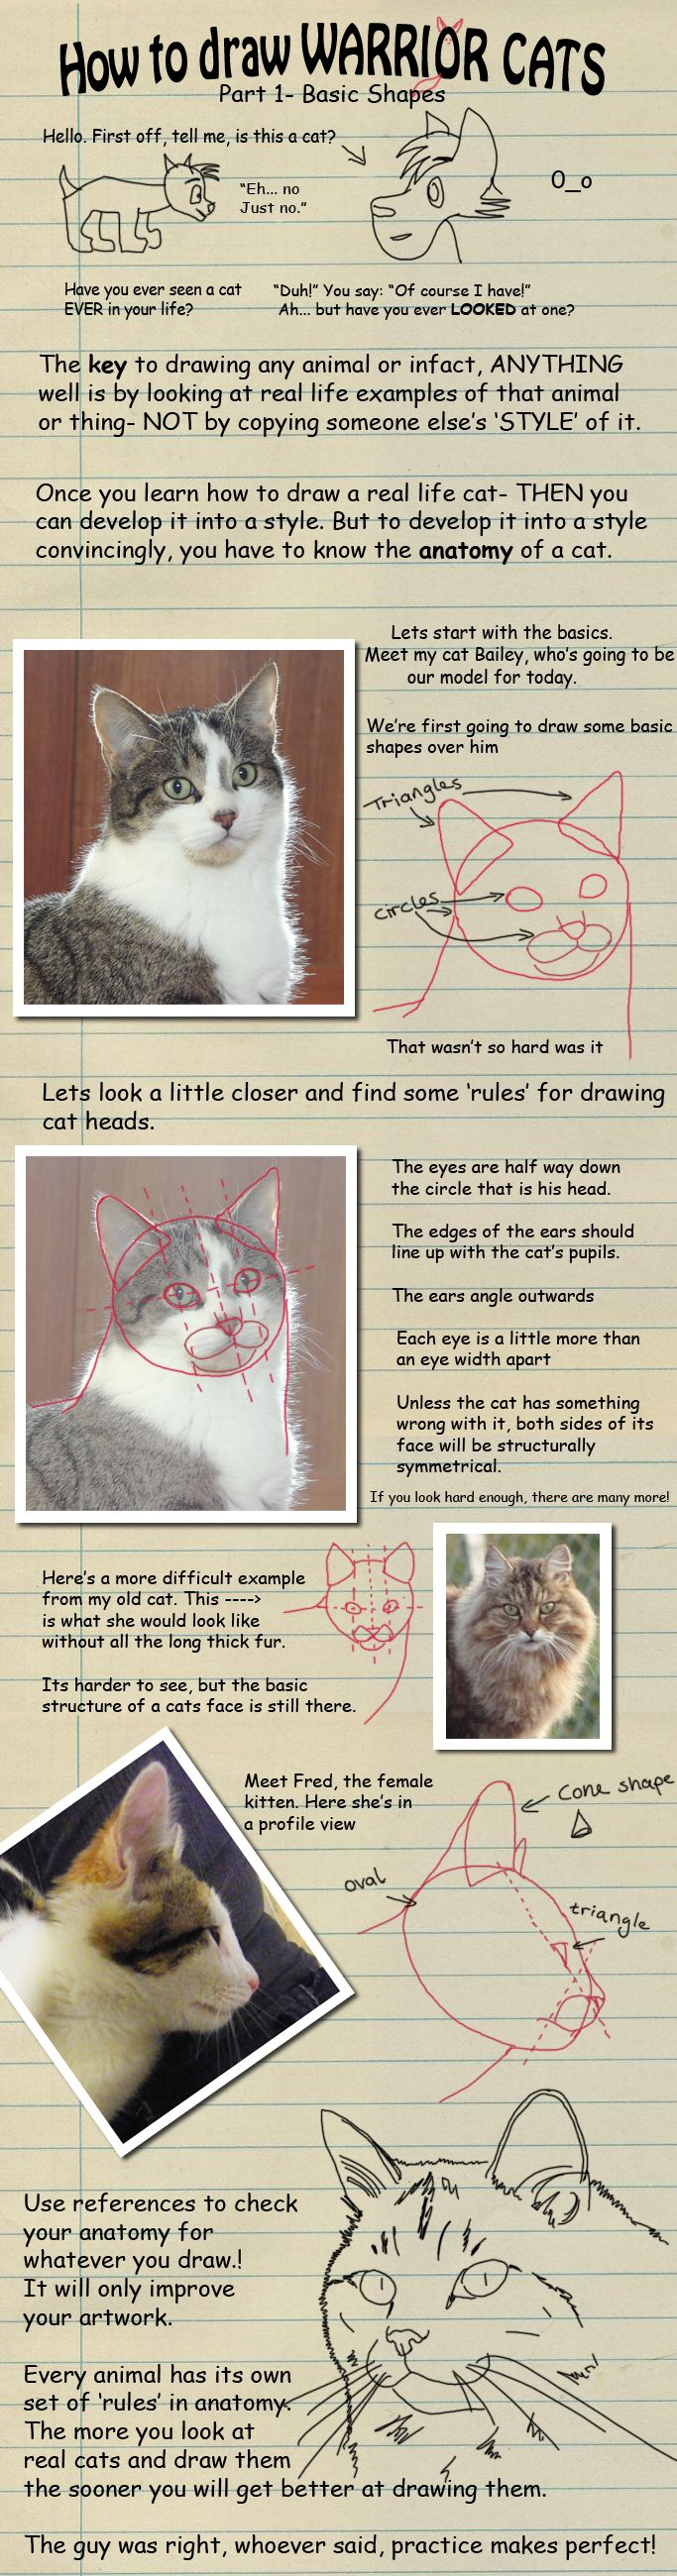 114 best How to draw : CATS images on Pinterest | Drawings of cats ...